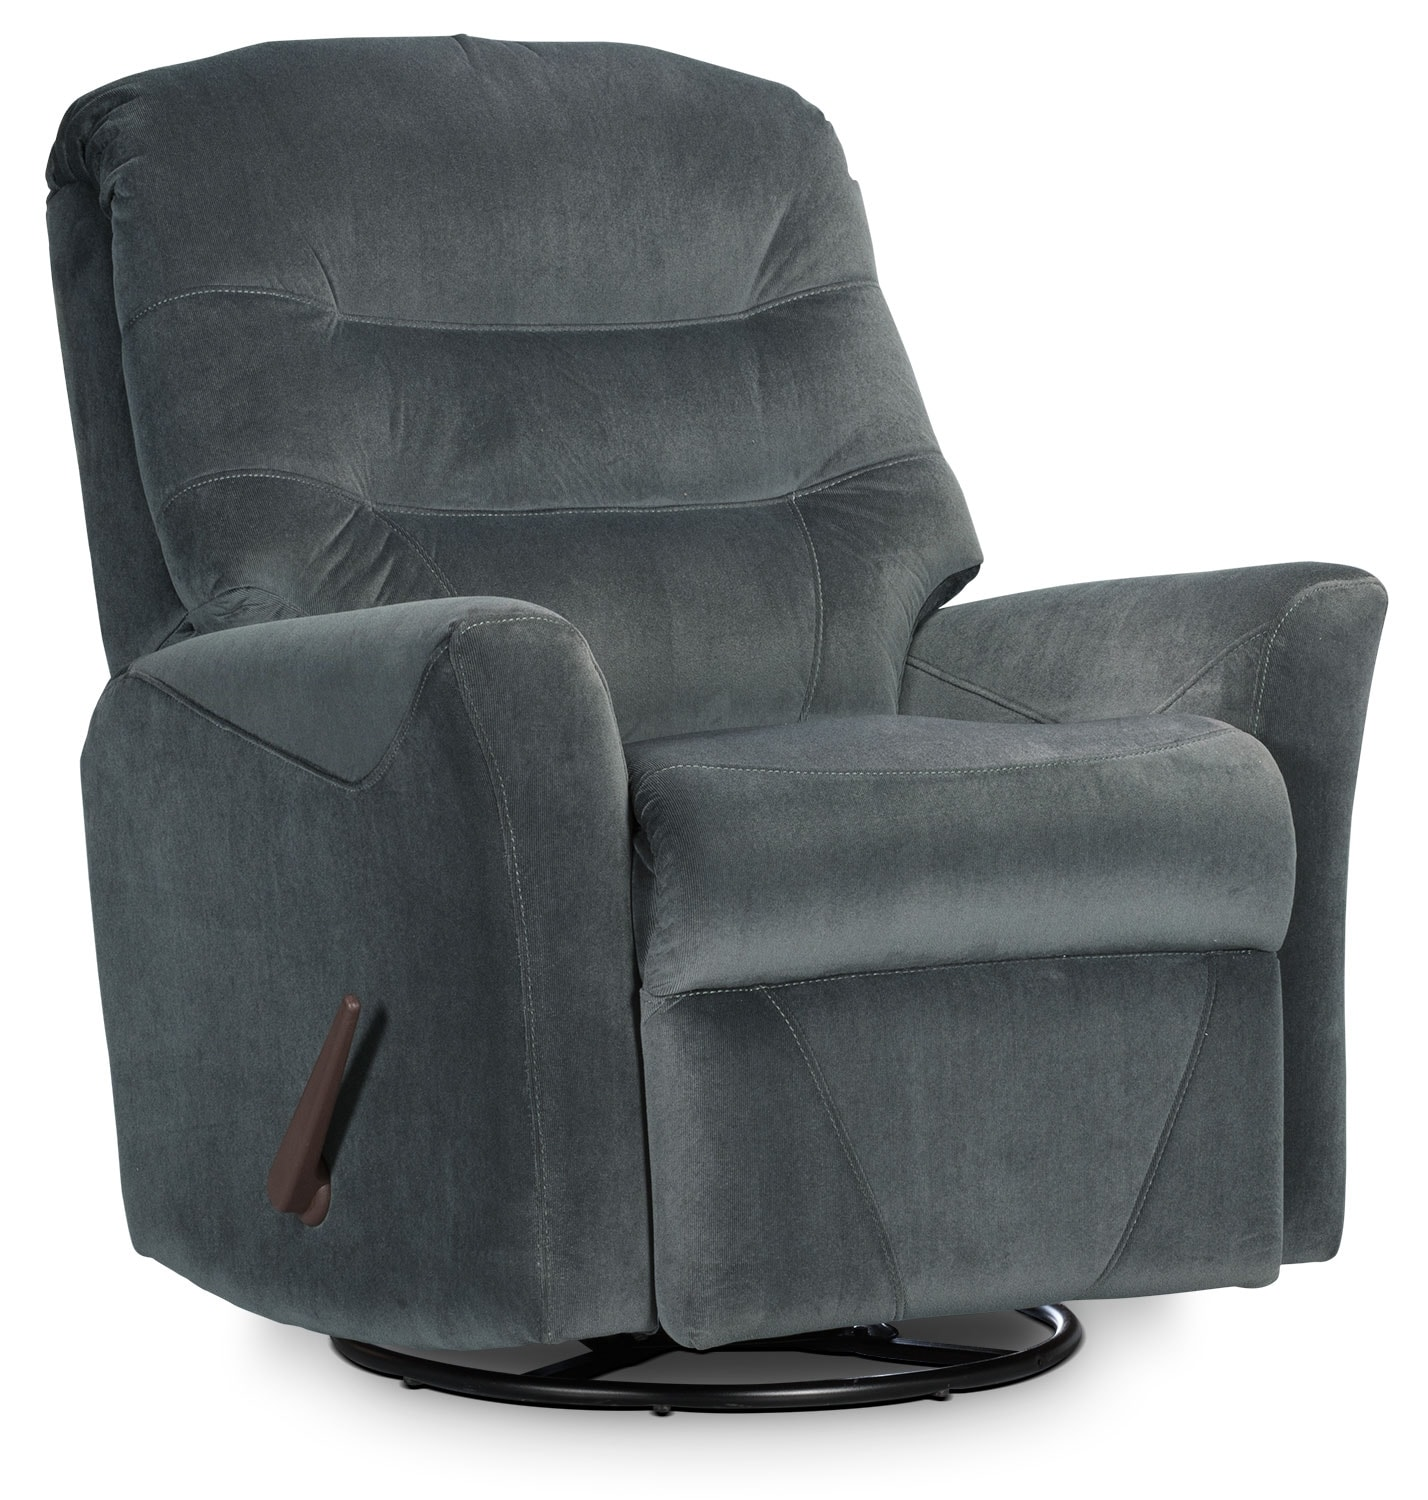 Designed2B Recliner 4560 Microsuede Swivel Glider Recliner - Graphite